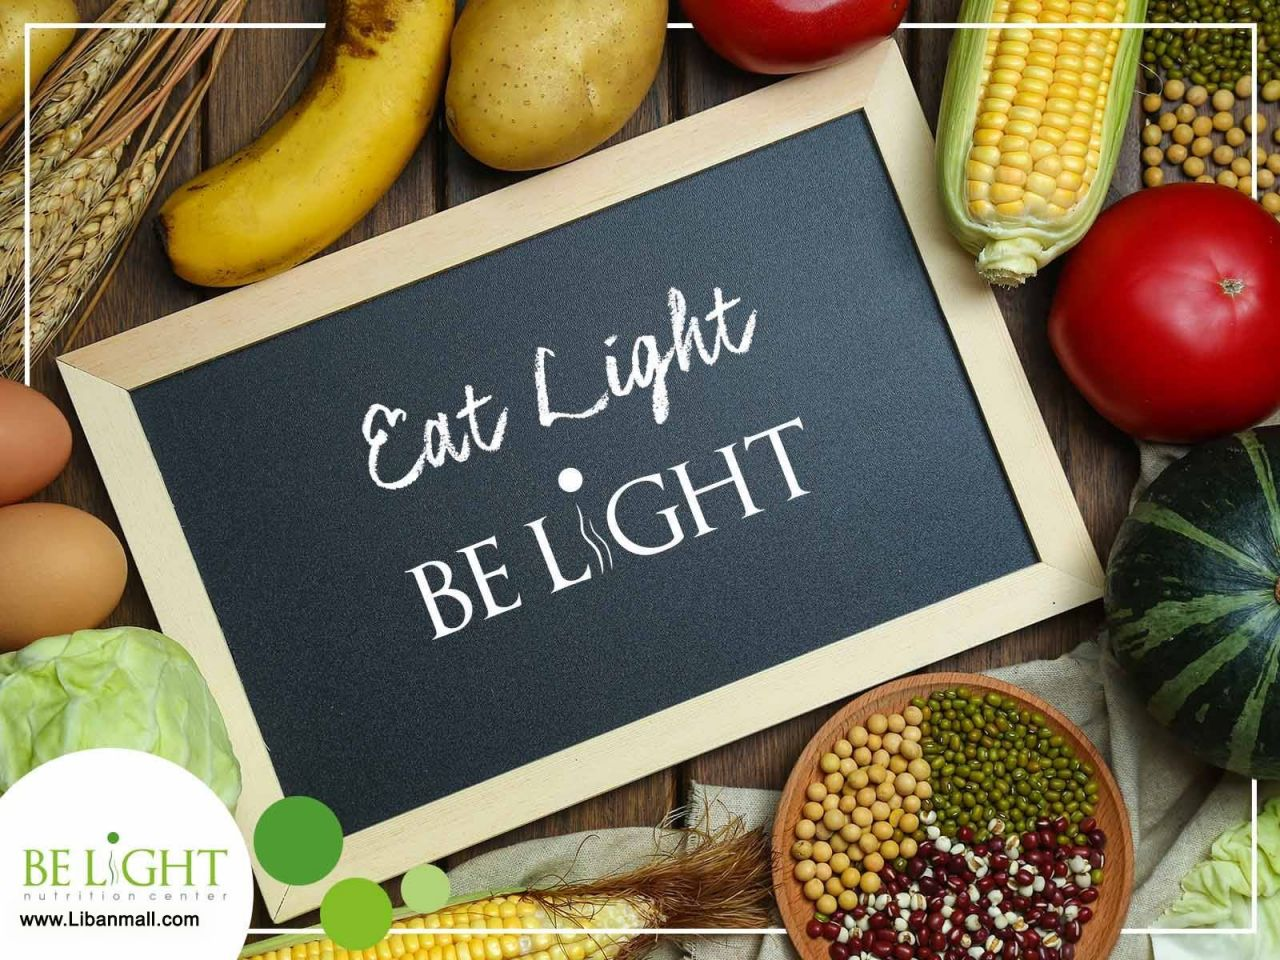 Be Light Dietitian and health center